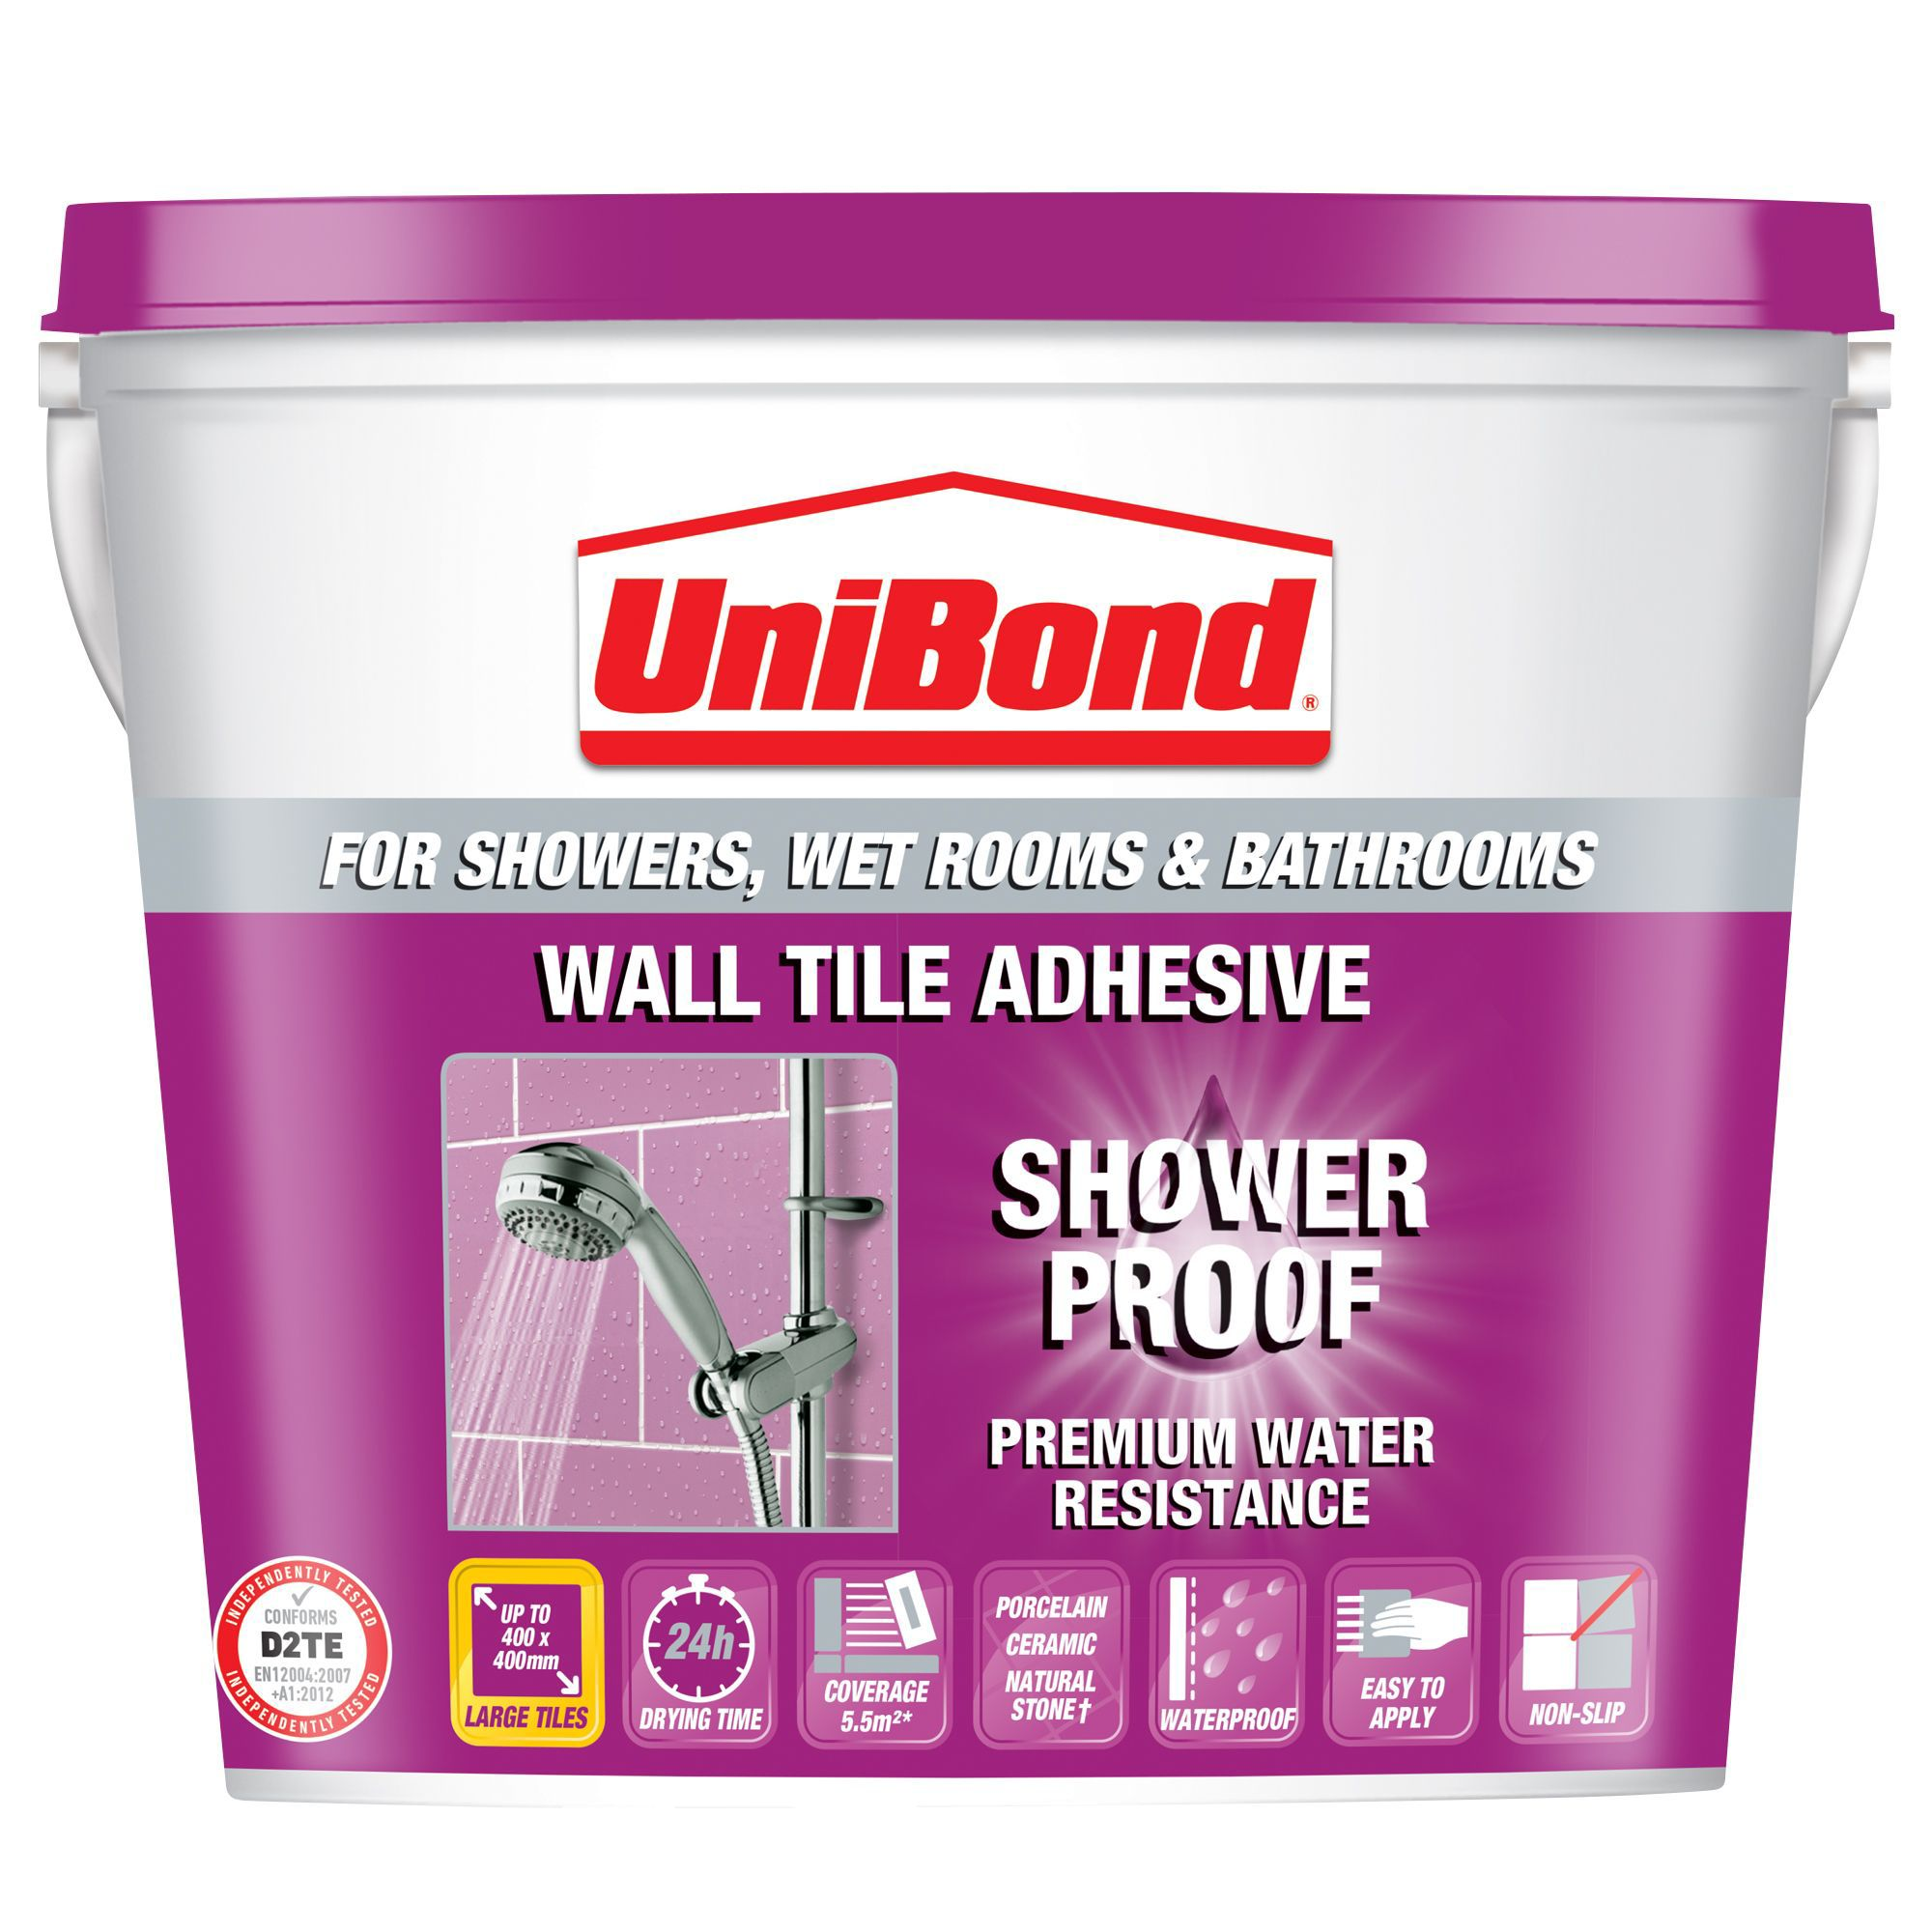 Diy at bq unibond showerproof ready to use wall tile adhesive beige 10l dailygadgetfo Gallery